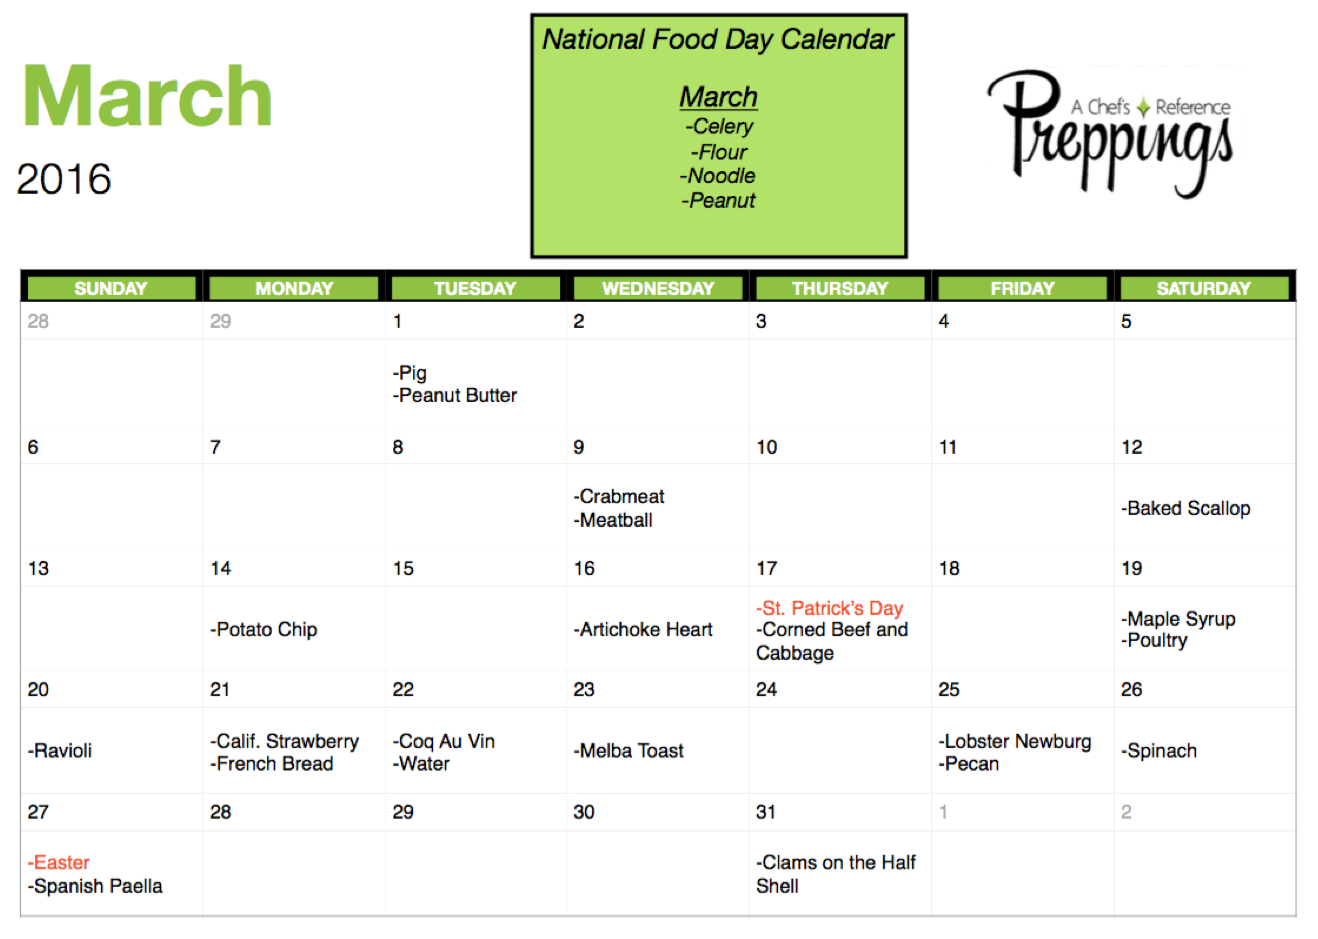 National Food Days- March 2016